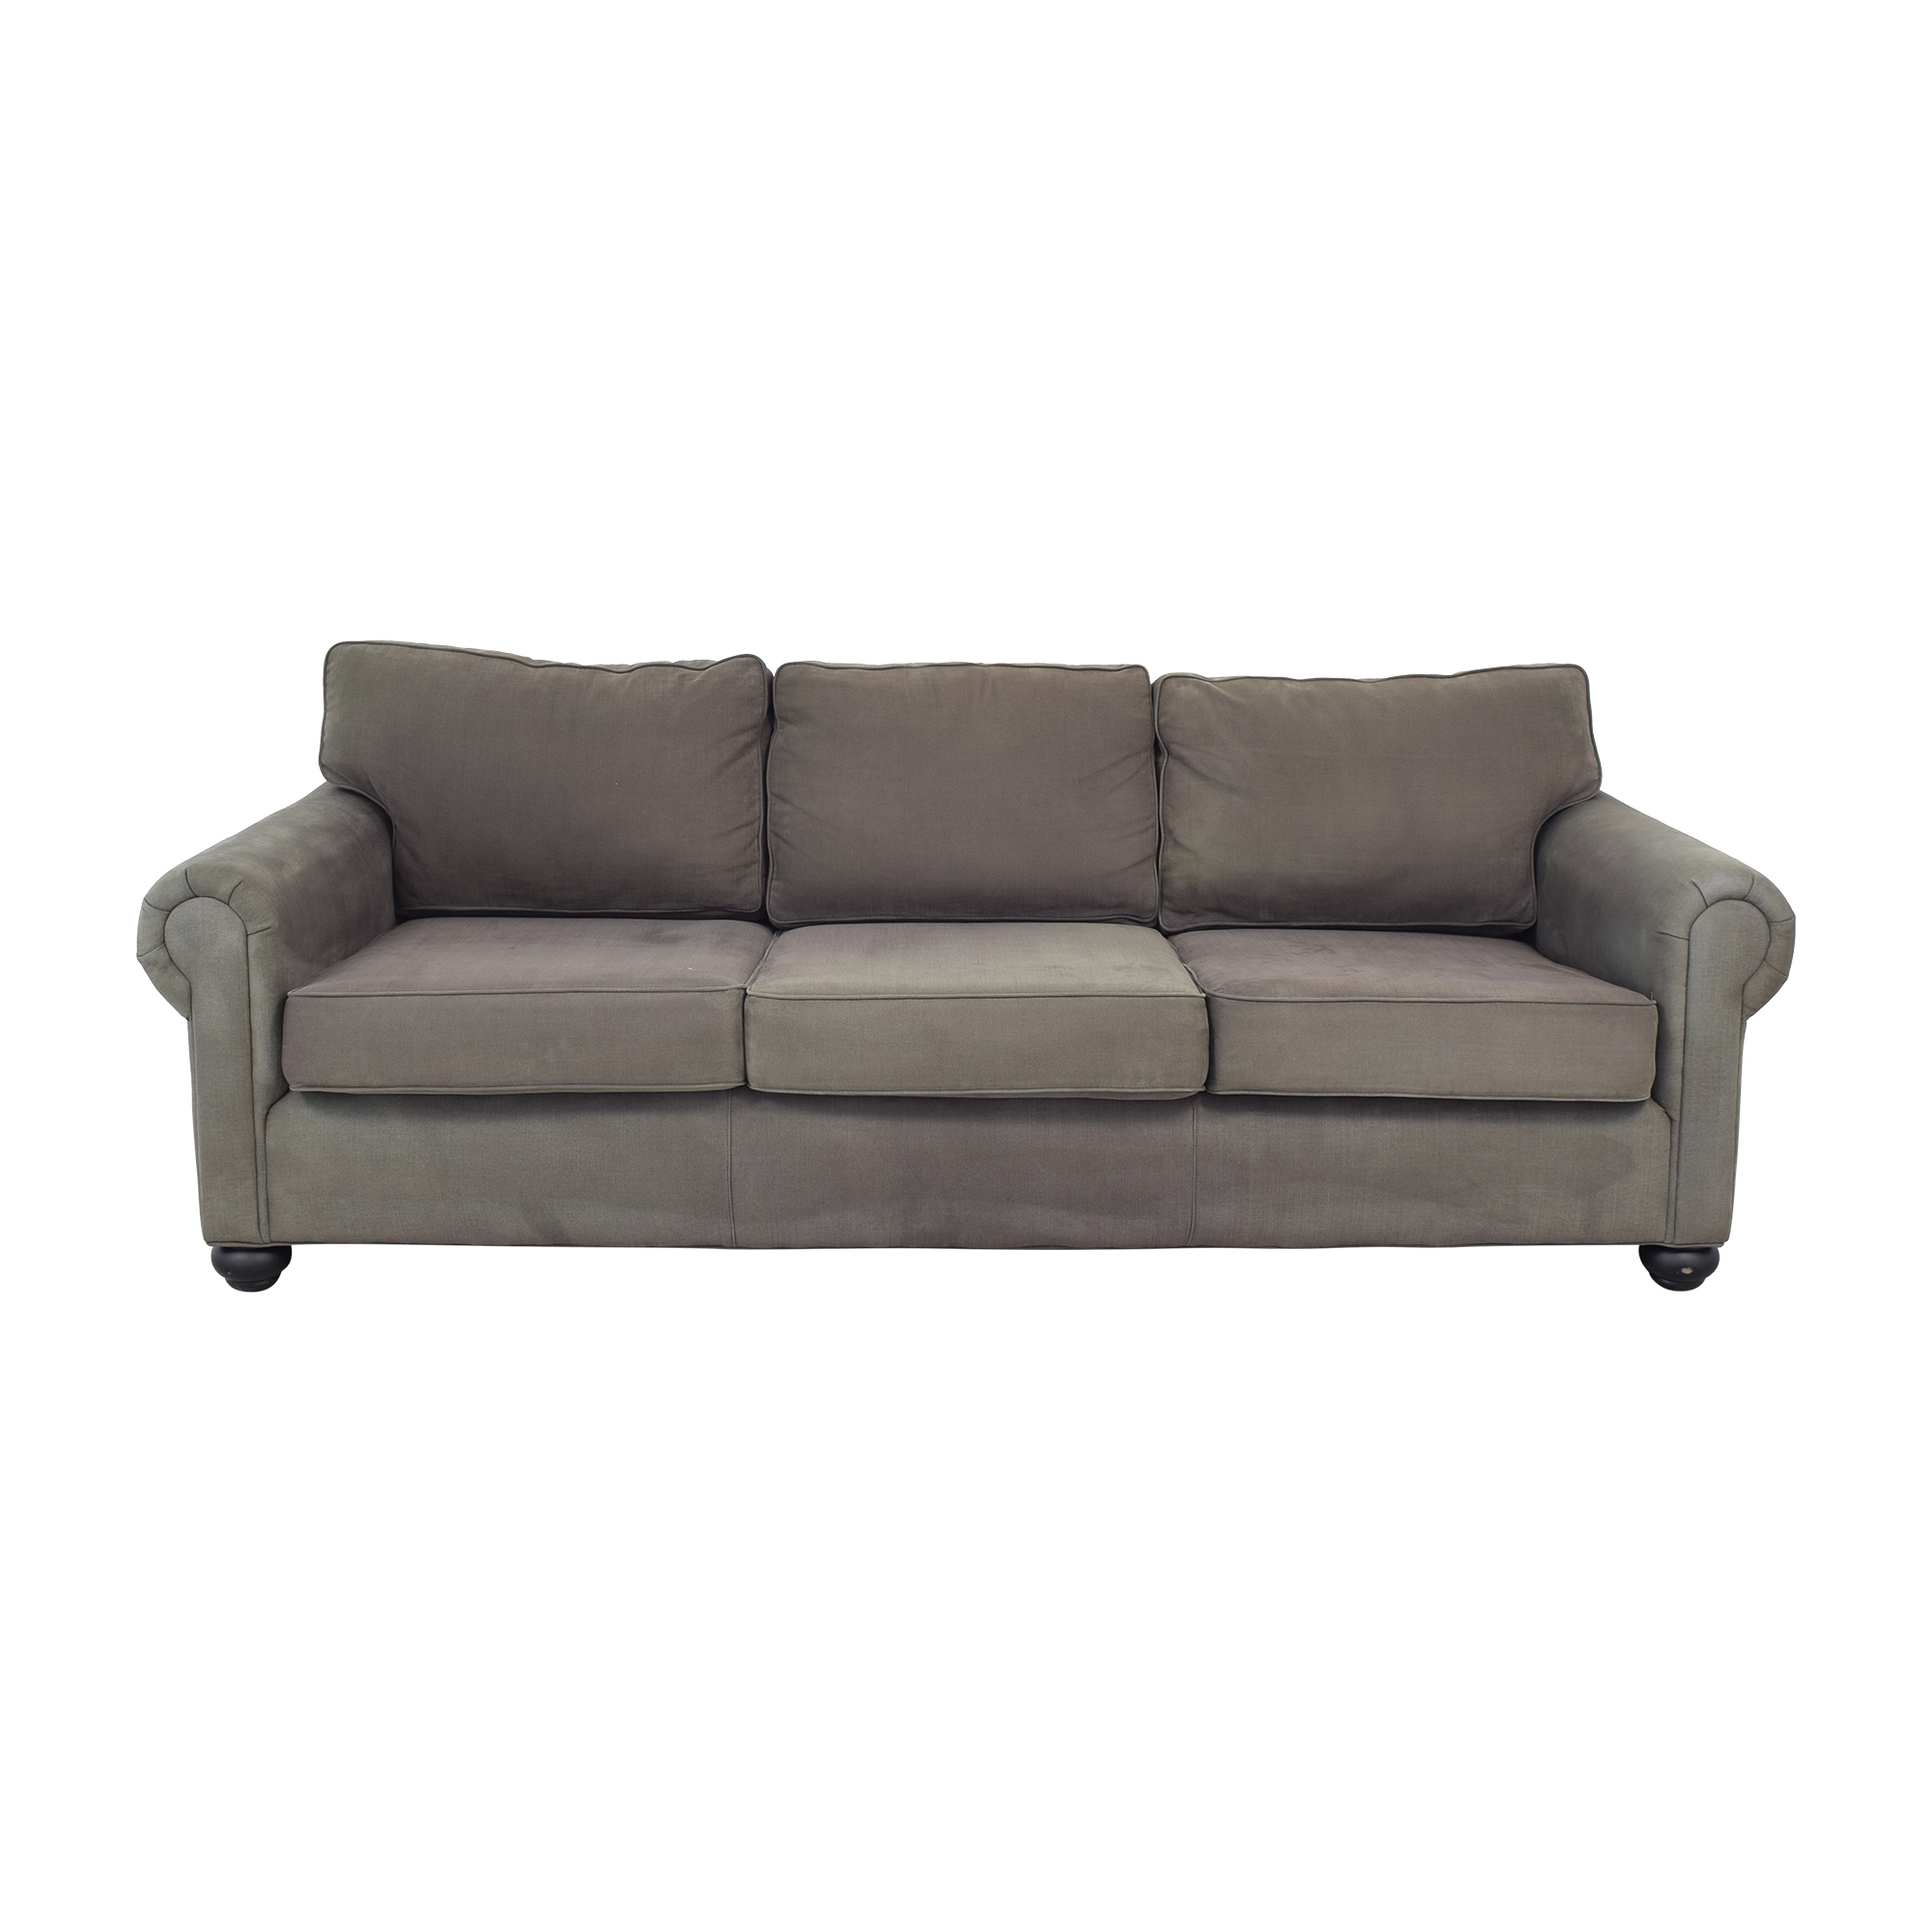 Restoration Hardware Original Lancaster Upholstered Sofa Restoration Hardware